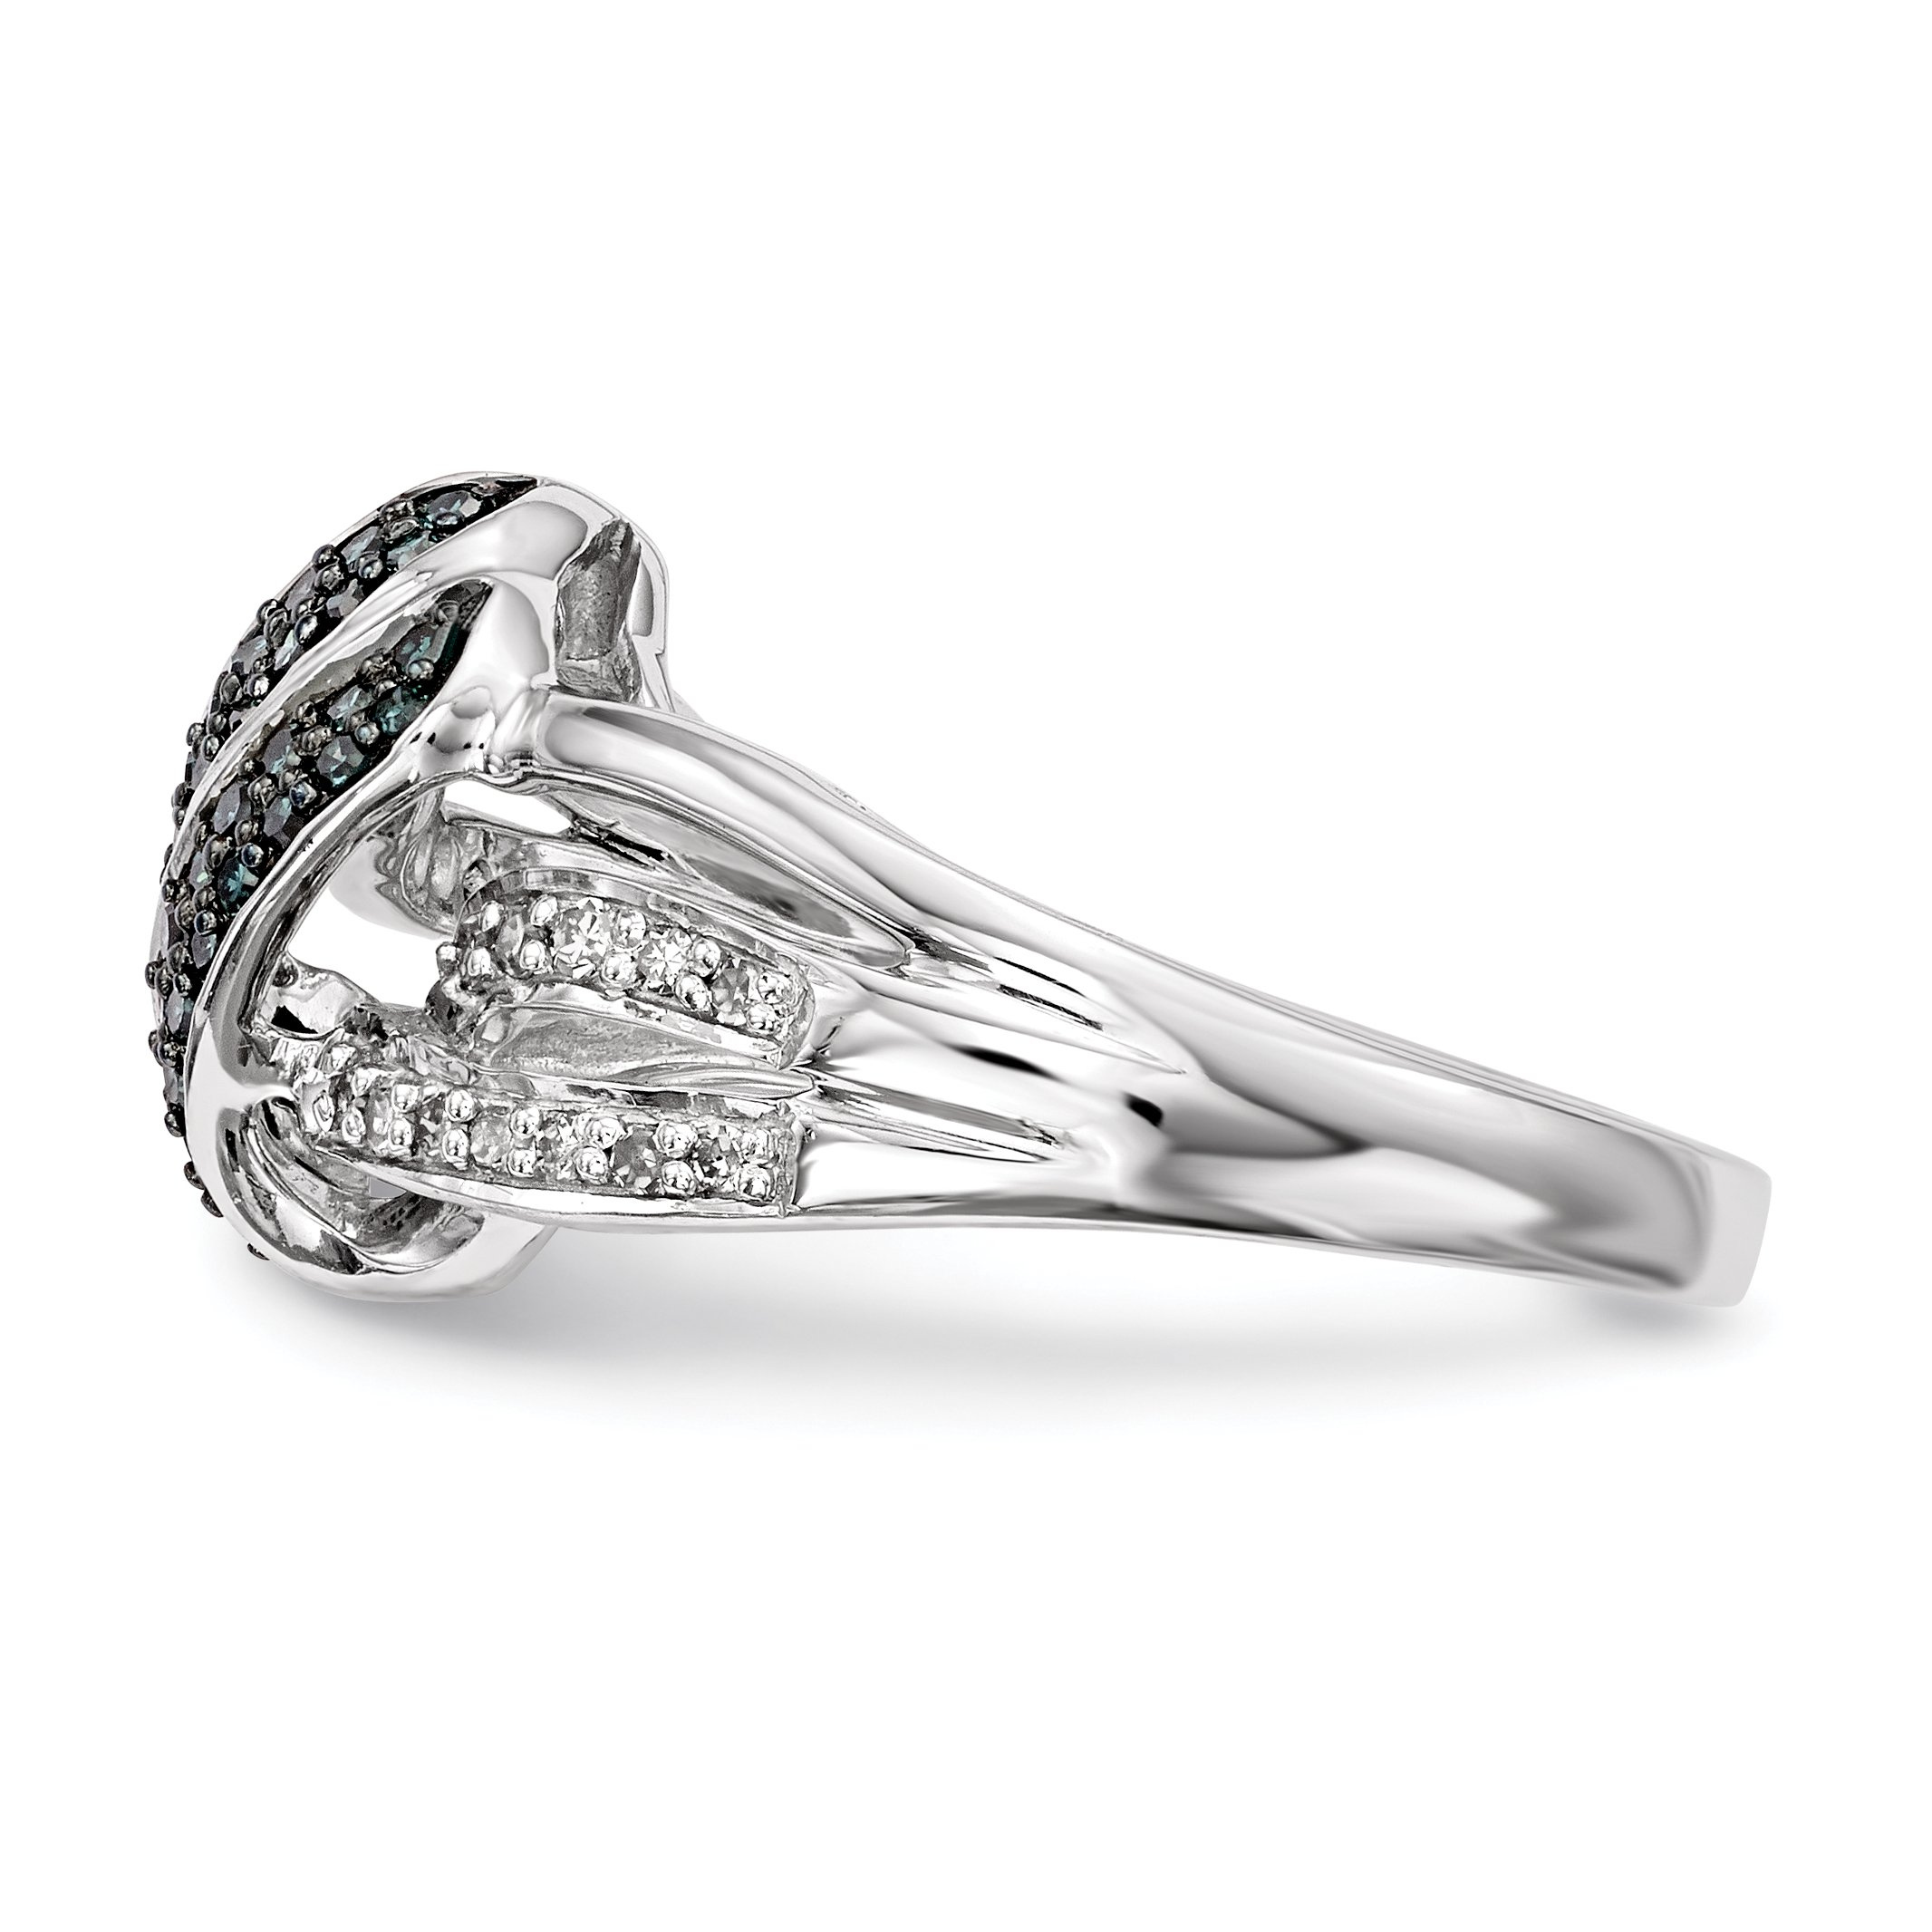 ICE CARATS 925 Sterling Silver White Blue Diamond Band Ring Size 6.00 Fine Jewelry Gift Set For Women Heart by ICE CARATS (Image #3)